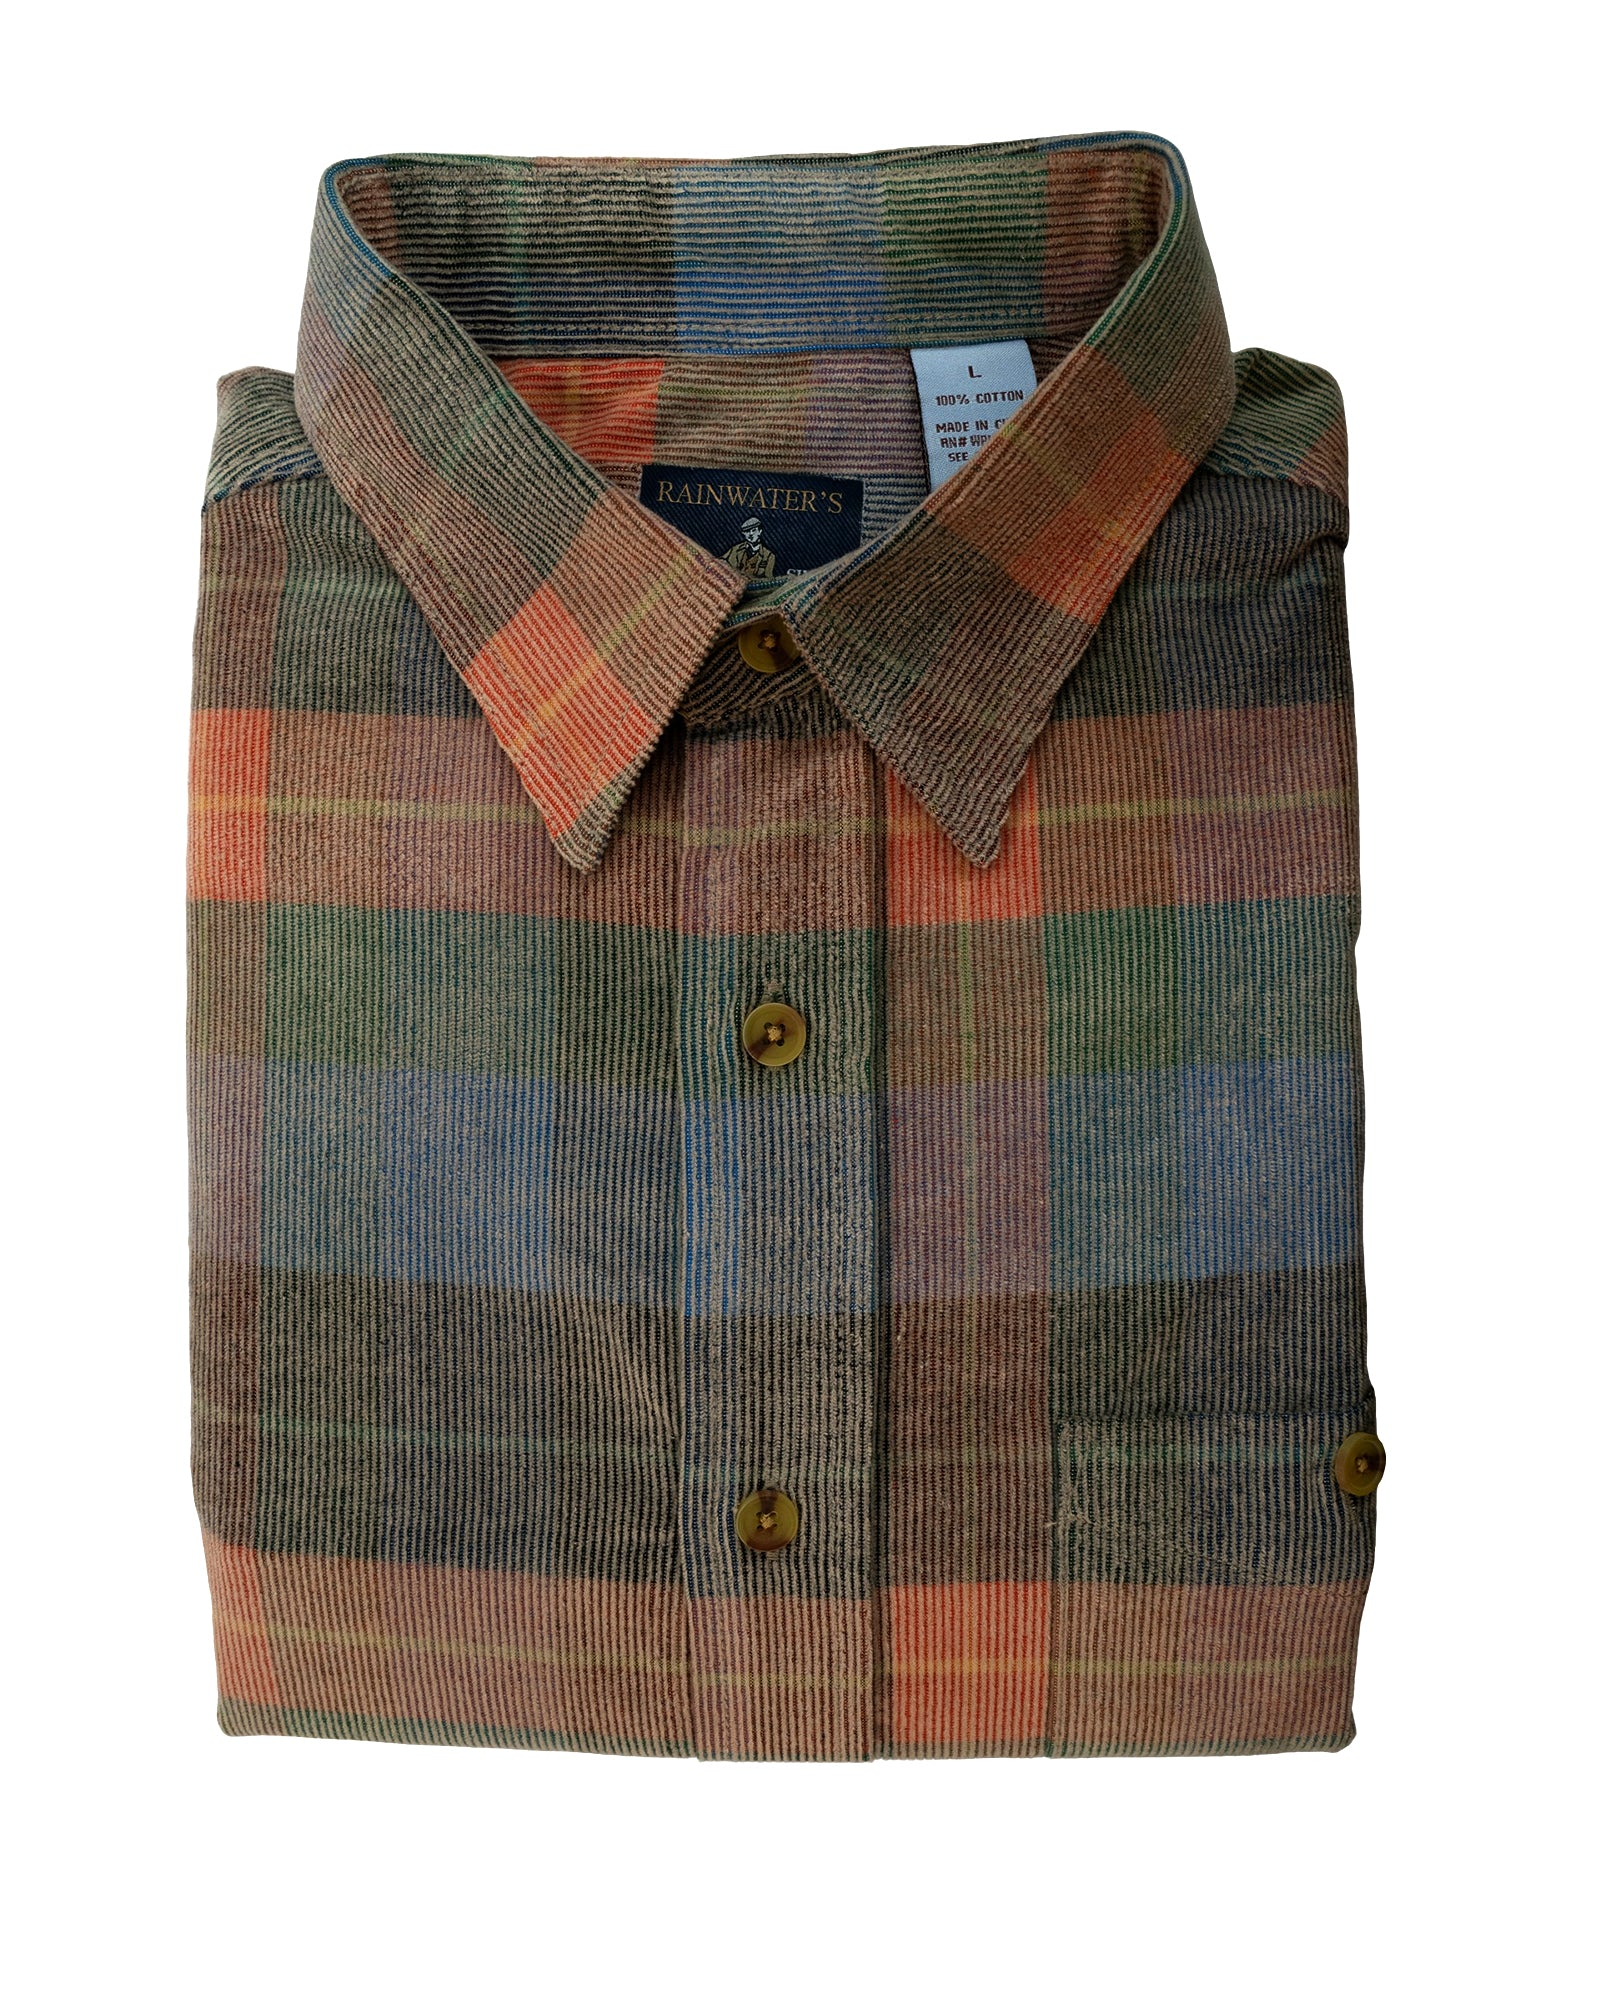 Washed Corduroy Sport Shirt In Blue, Brown and Orange Plaid - Rainwater's Men's Clothing and Tuxedo Rental